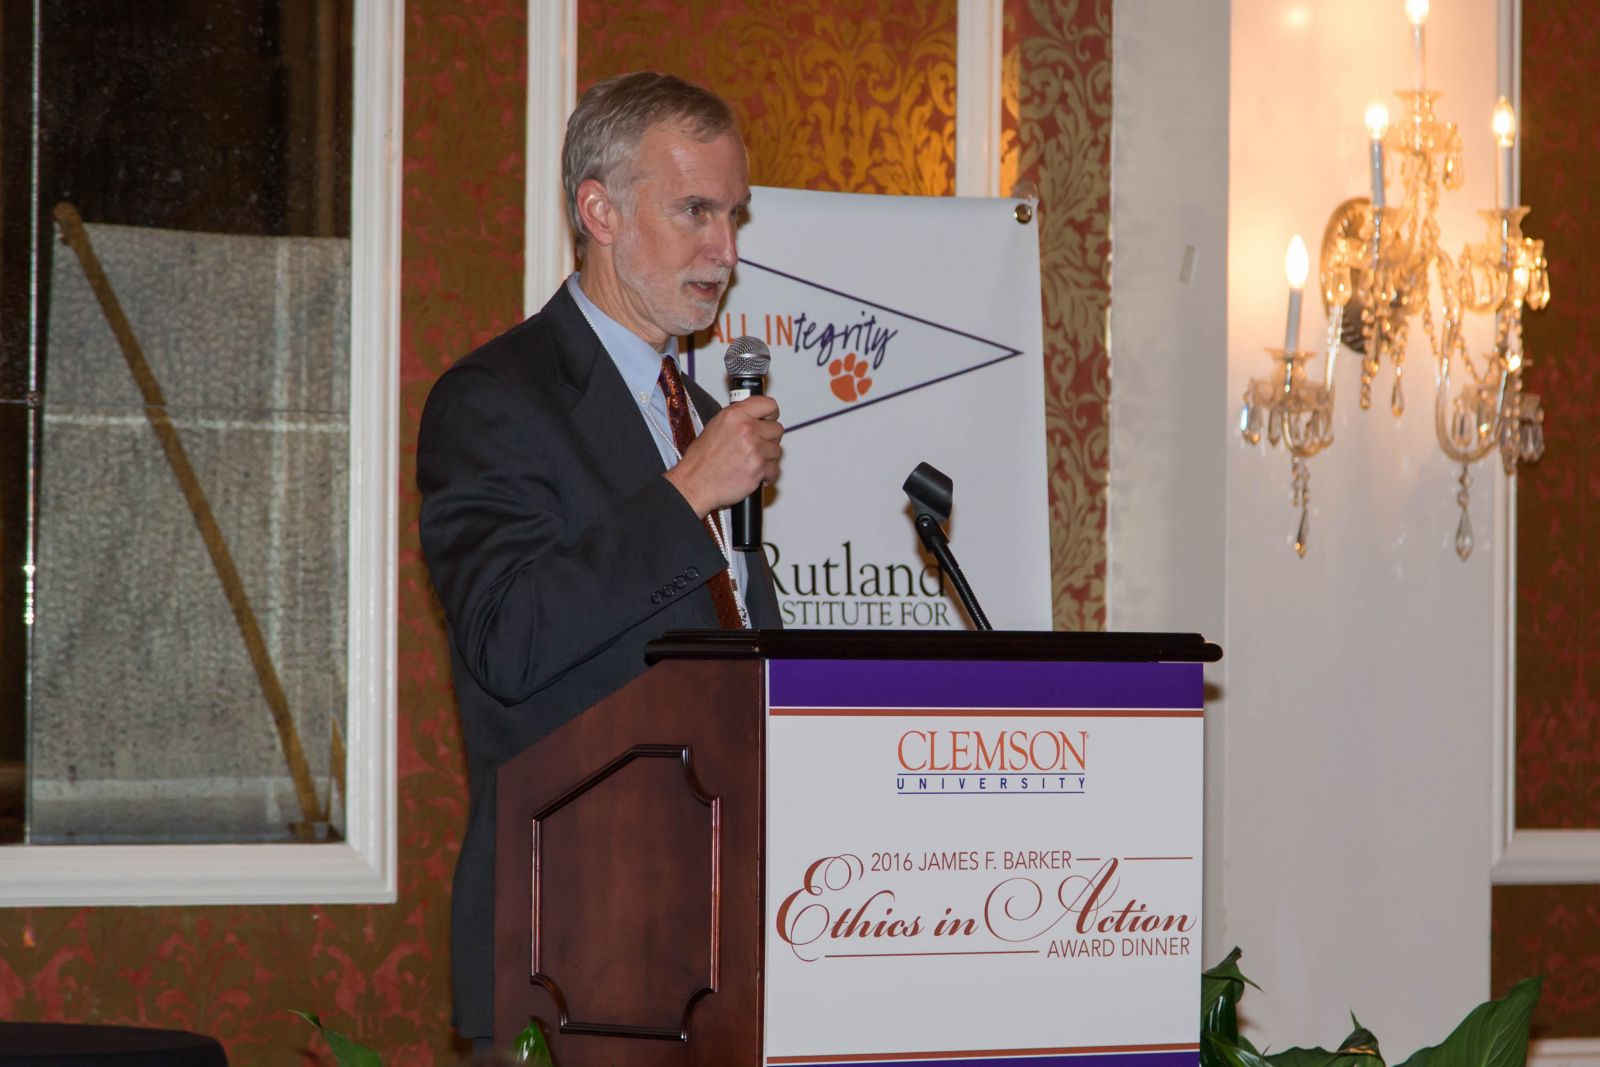 Robert Jones, Clemson University provost and executive vice president for academic affairs, addresses a croud during the presentation of the 2016 James F. Barker Ethics in Action Award dinner Thursday, Feb. 9, 2017 at the Poinsett Club in Greenville. (Photo/Serge Kaminski for Patrick Cox Photography)